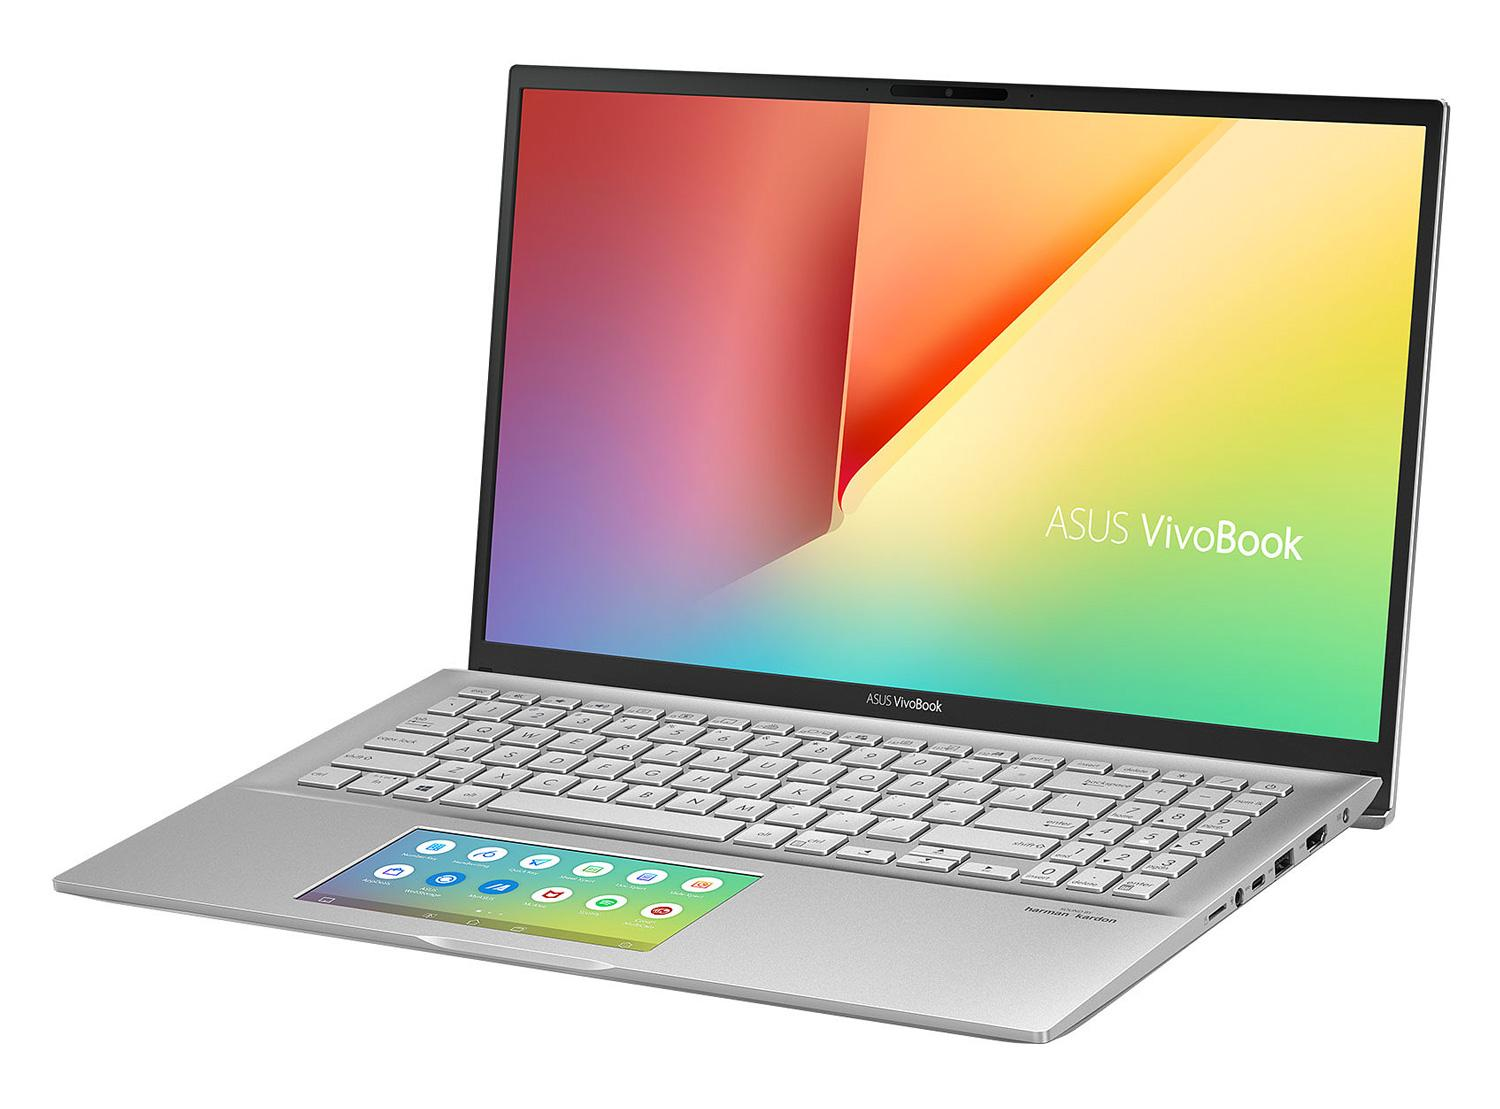 Ordinateur portable Asus Vivobook S532FA-BQ021T Argent - ScreenPad 2.0, SSD 1 To - photo 2